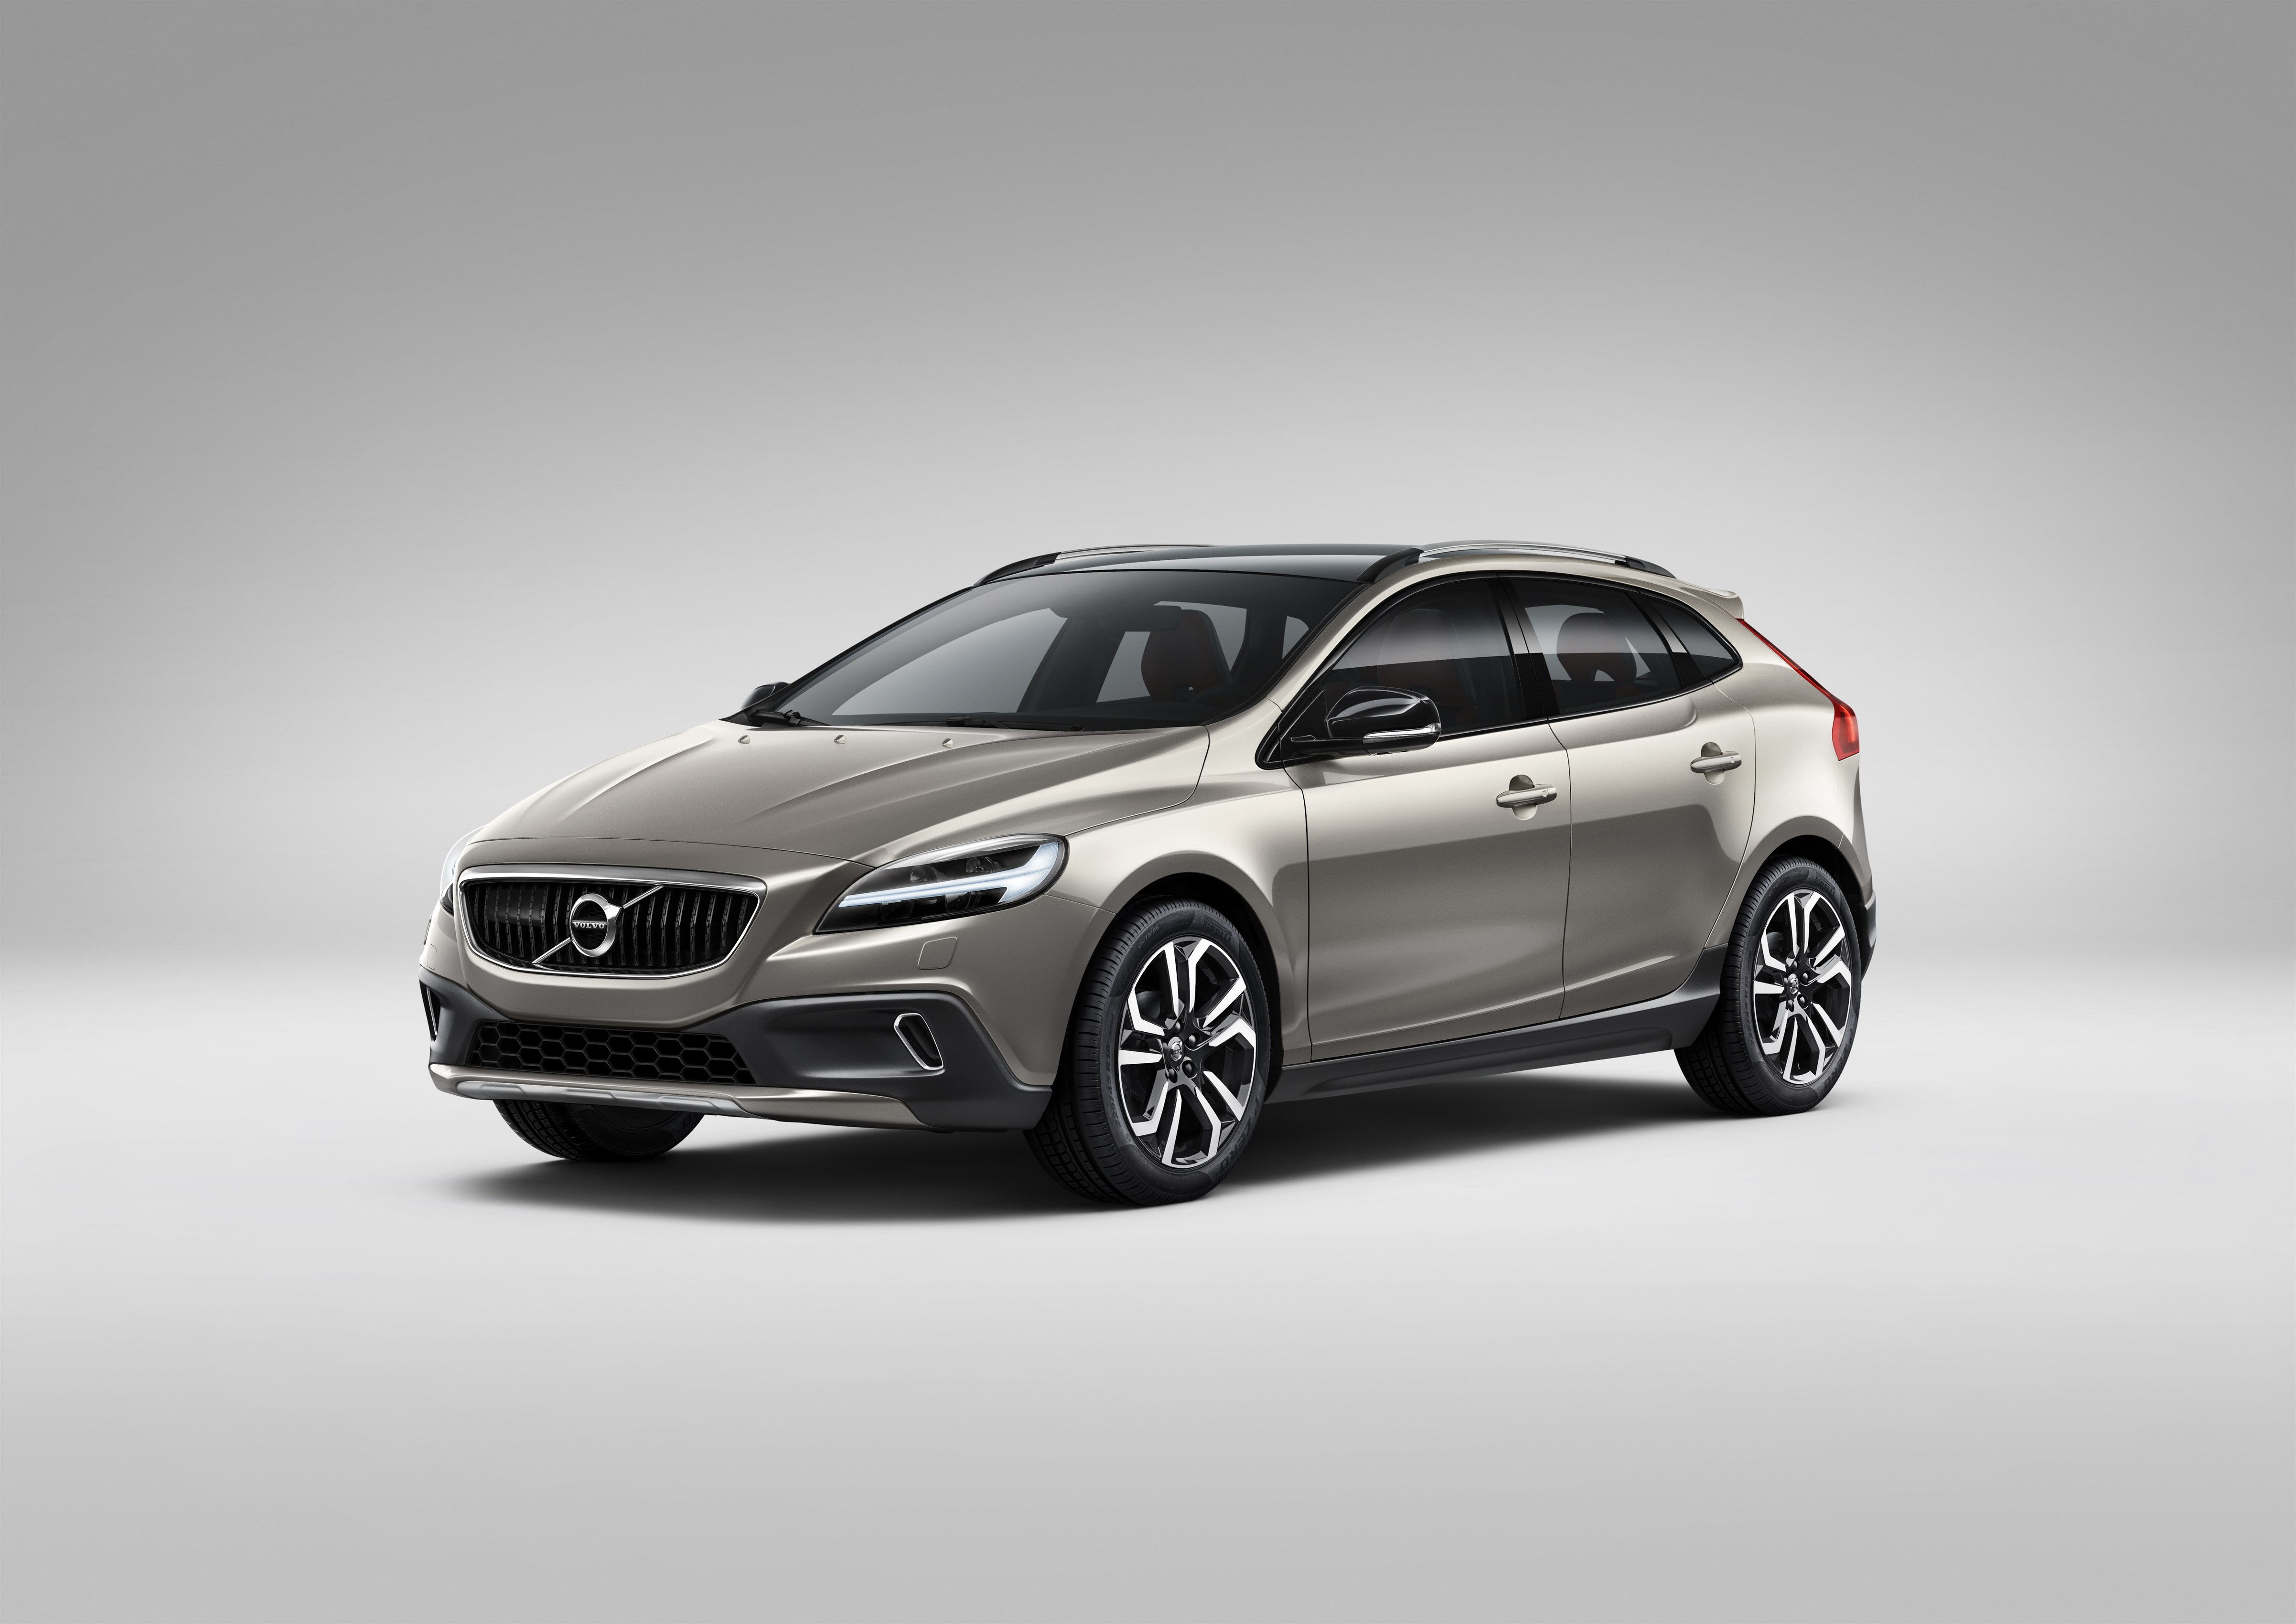 2017 Volvo V40 Cross Country New Engines: 1.5L T3 and 2.0L T4 and 2-Liter D2 - autoevolution